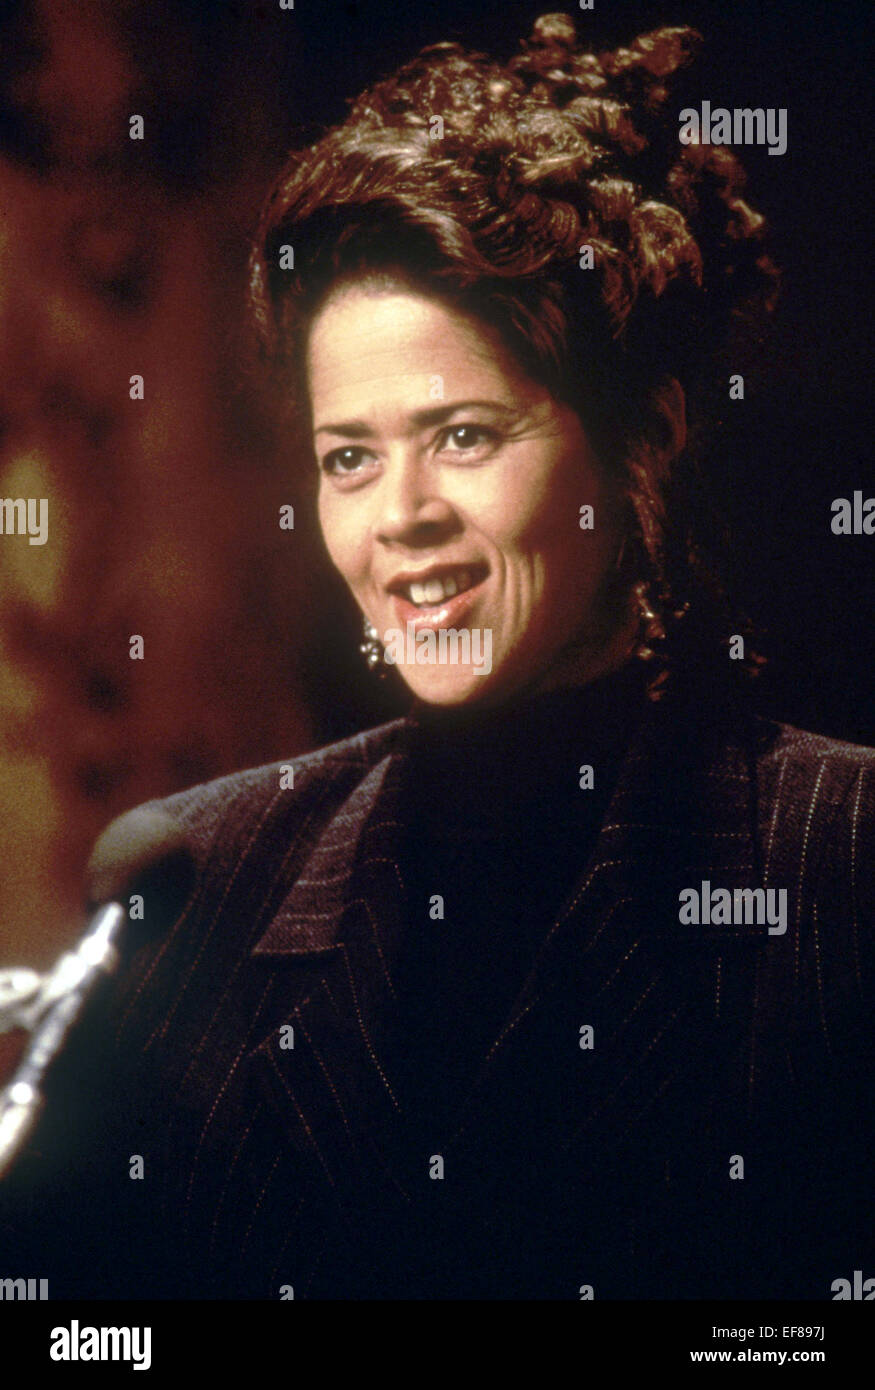 Watch Anna Deavere Smith video